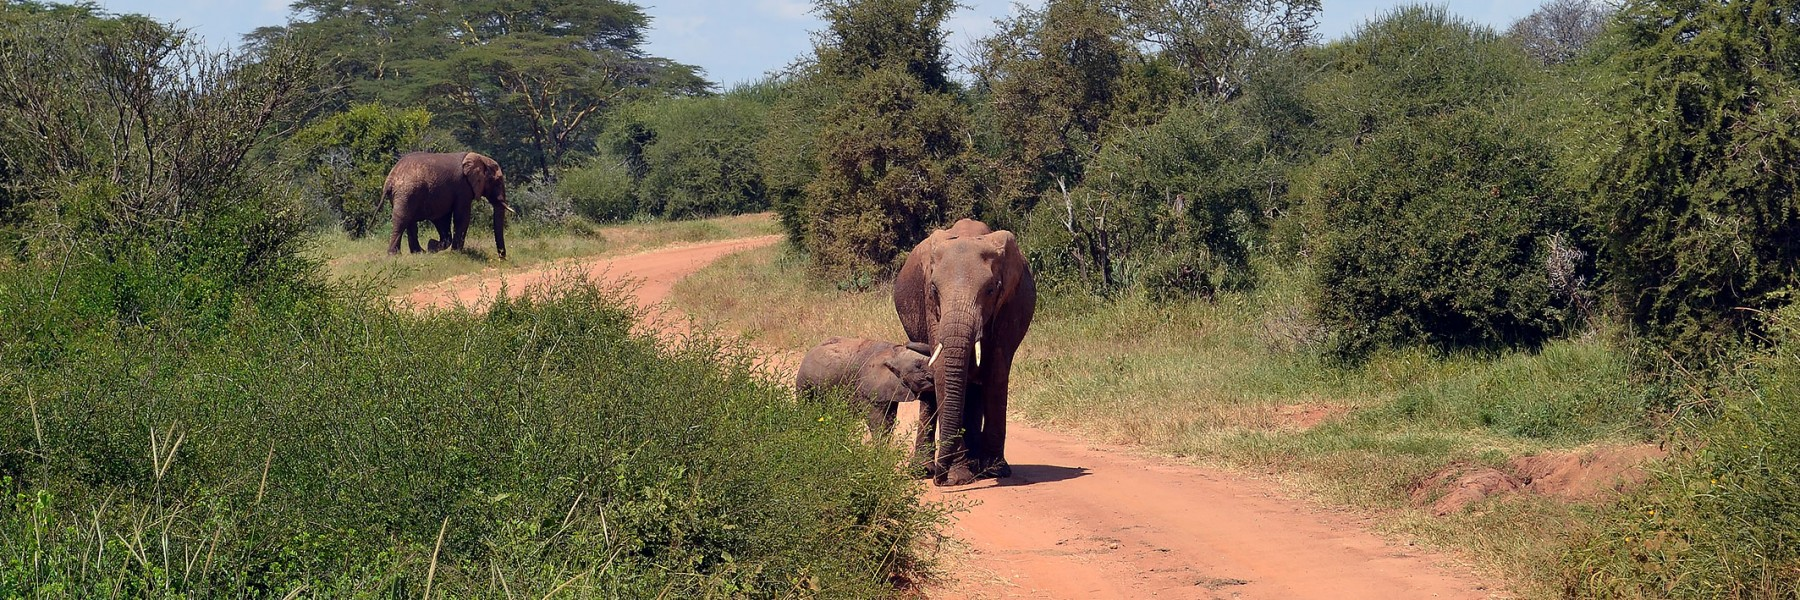 A mother elephant guards her offspring in the middle of the road. Credit: Elizabeth Forbes